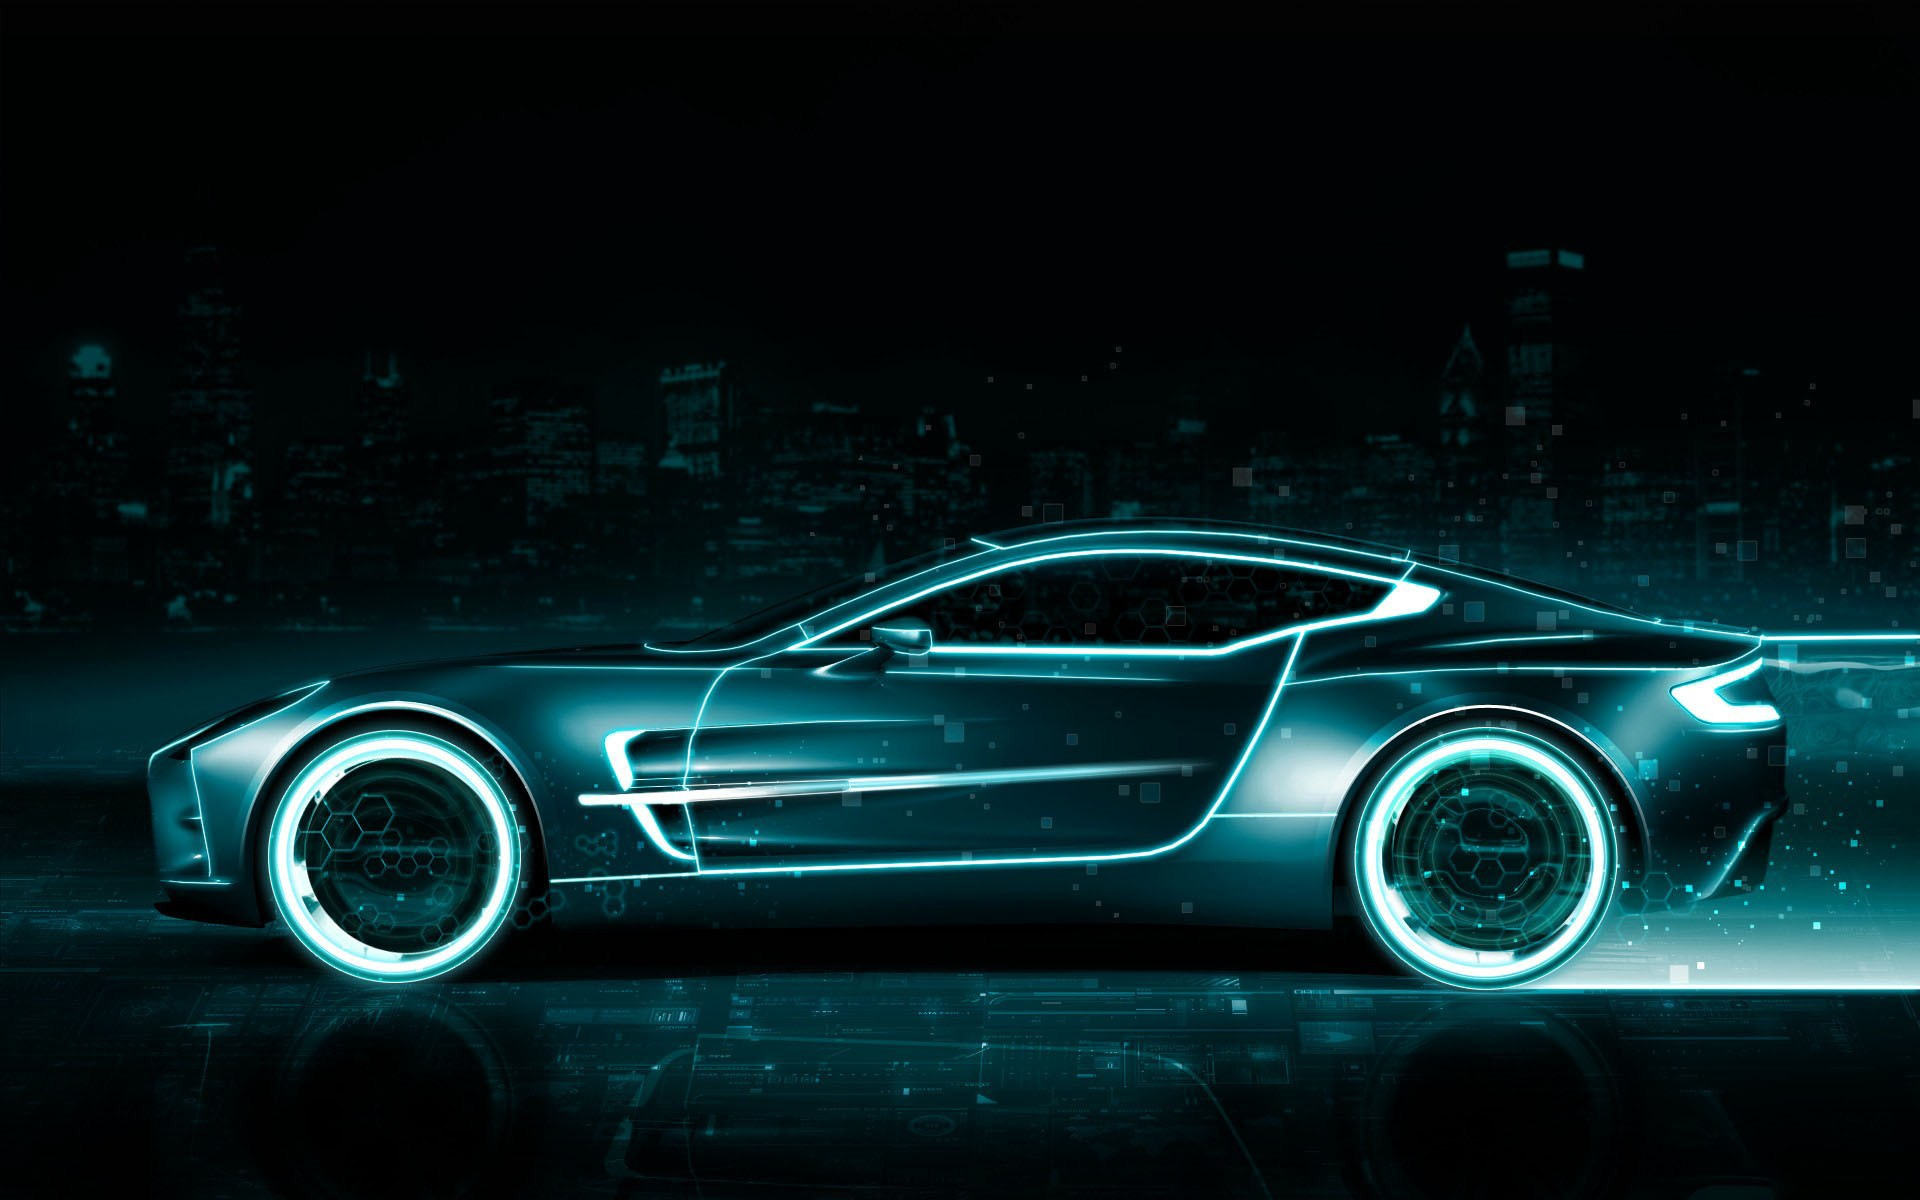 Animated Car Wallpaper 1920x1200